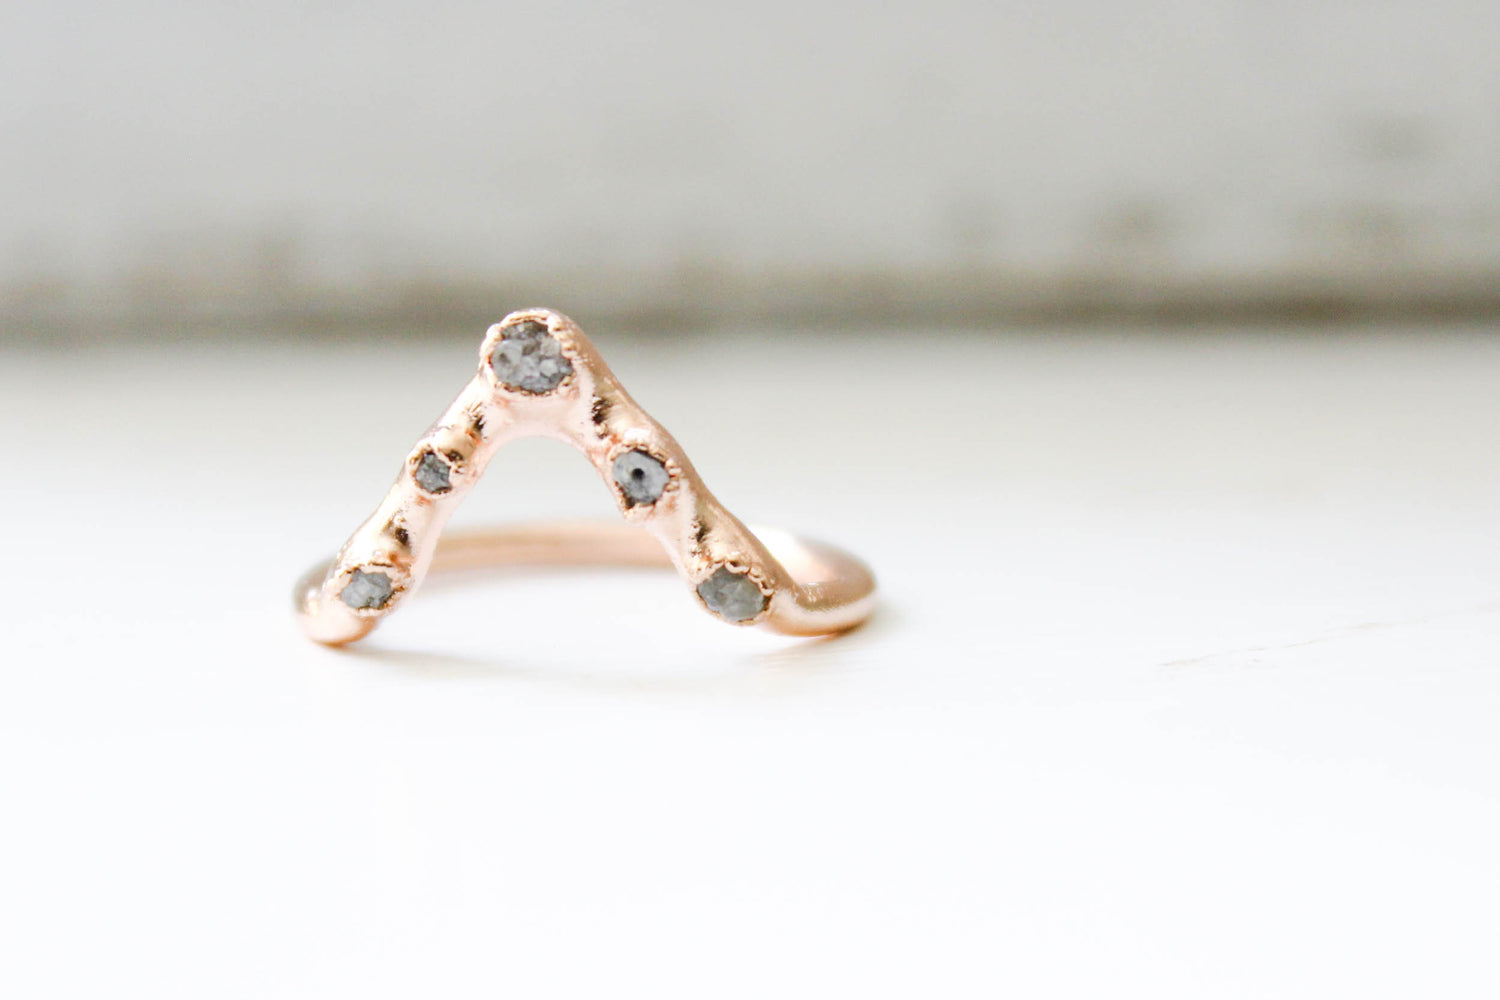 The Diamond Pyramid Ring - The Fox And Stone Bohemian Jewelry Alternative Engagement Ring